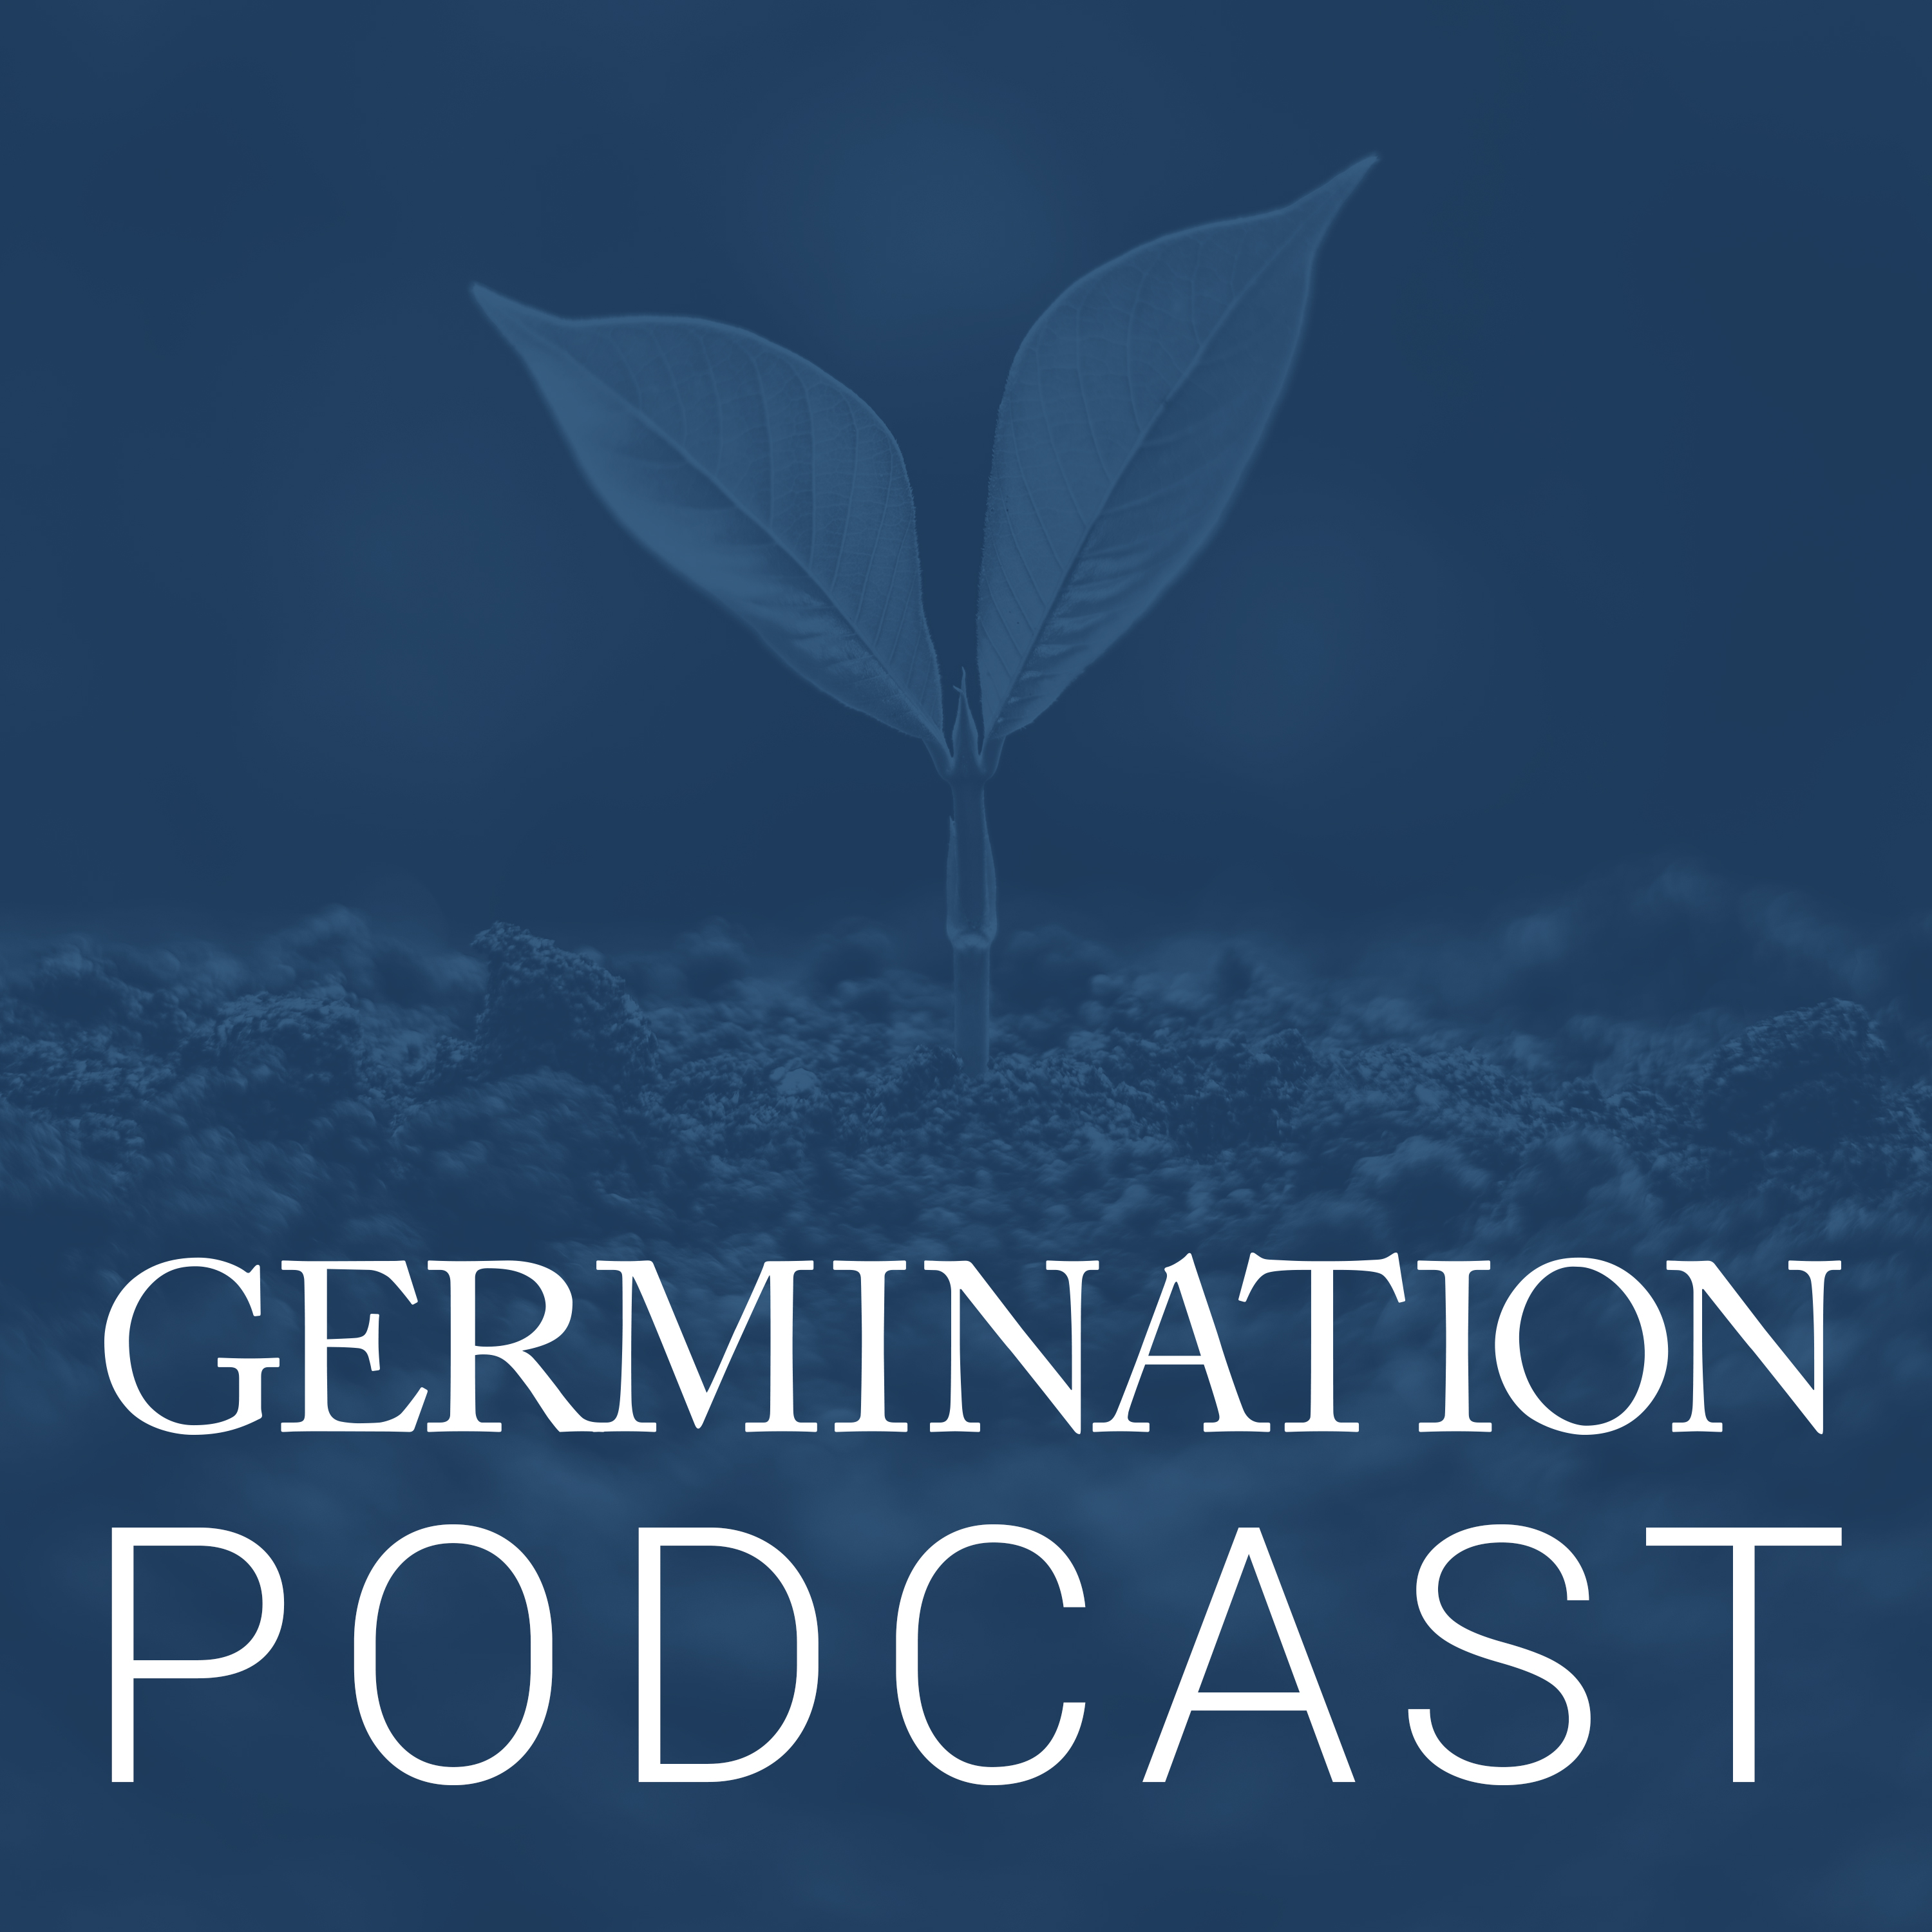 Germination Podcast